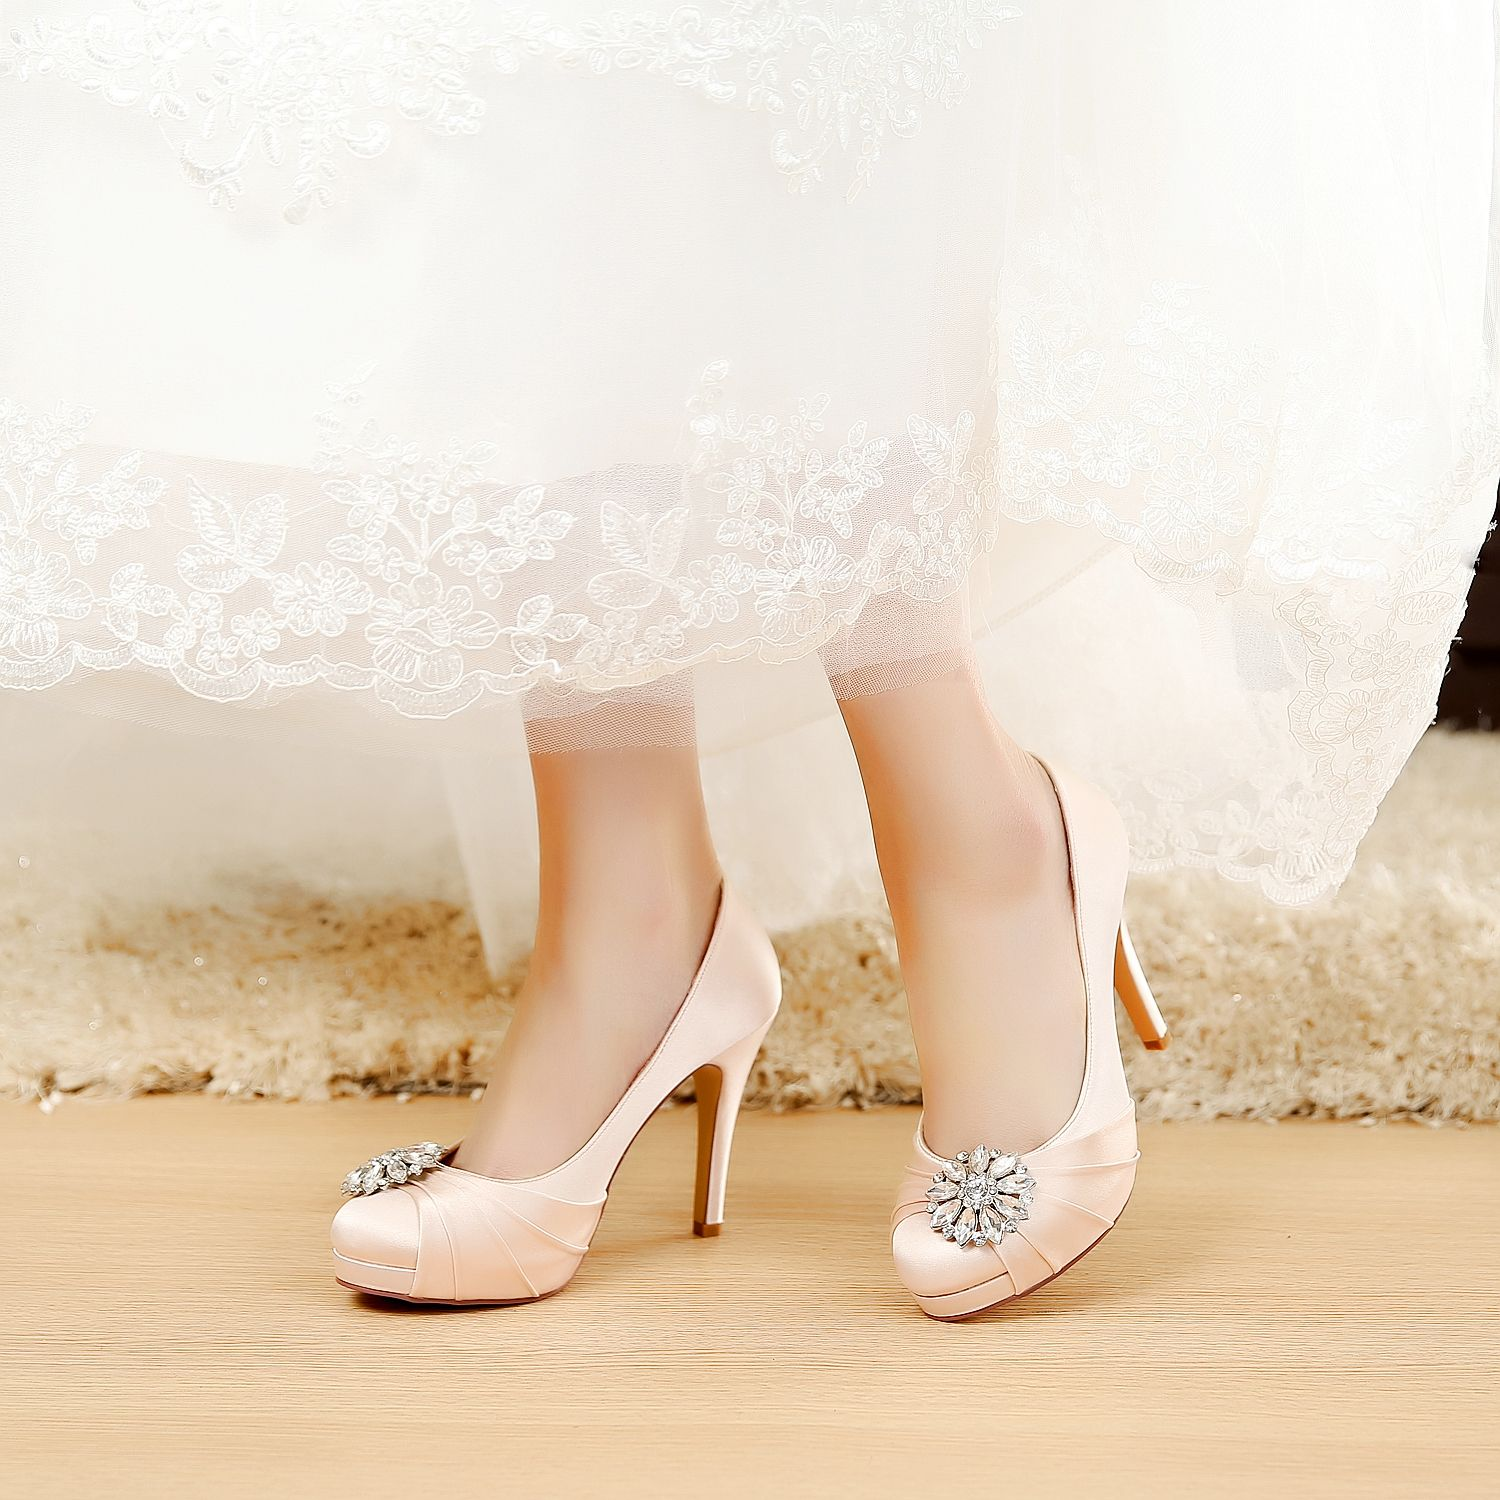 glitterousnet most comforter you best can shoes images wedding pinterest comfortable dance in on actually bridal bride